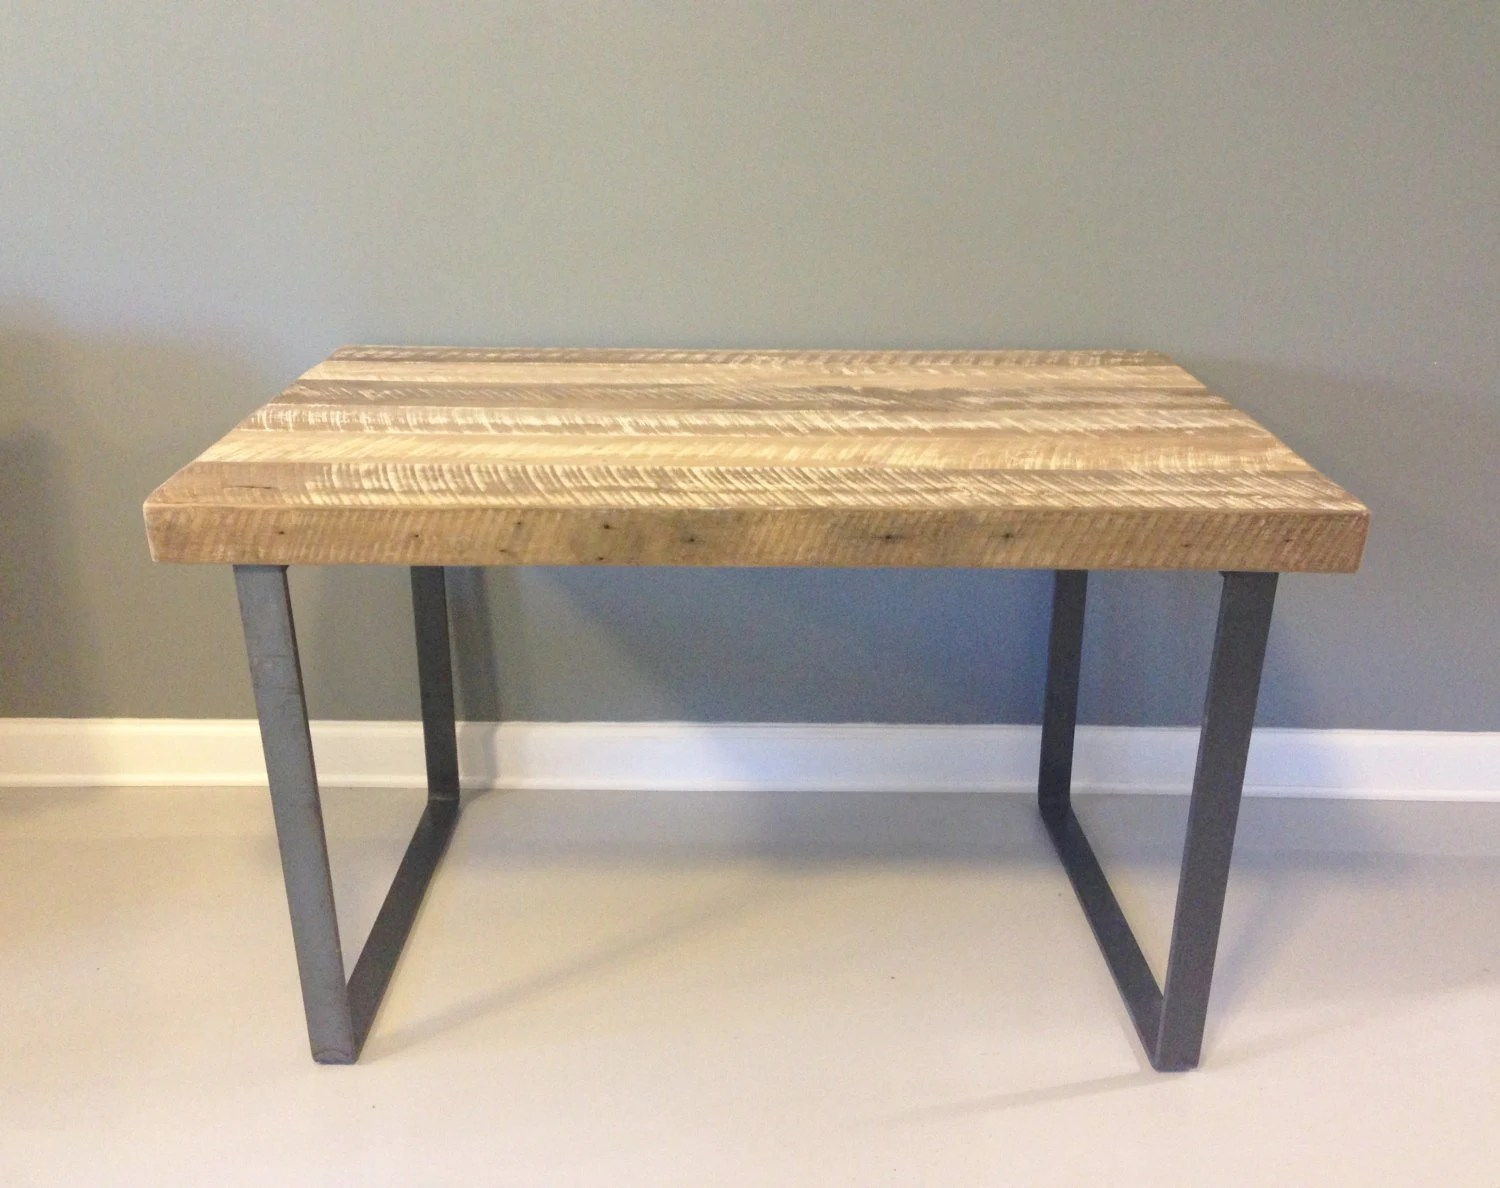 Reclaimed Wood Table Dining Table Kitchen Table By DendroCo